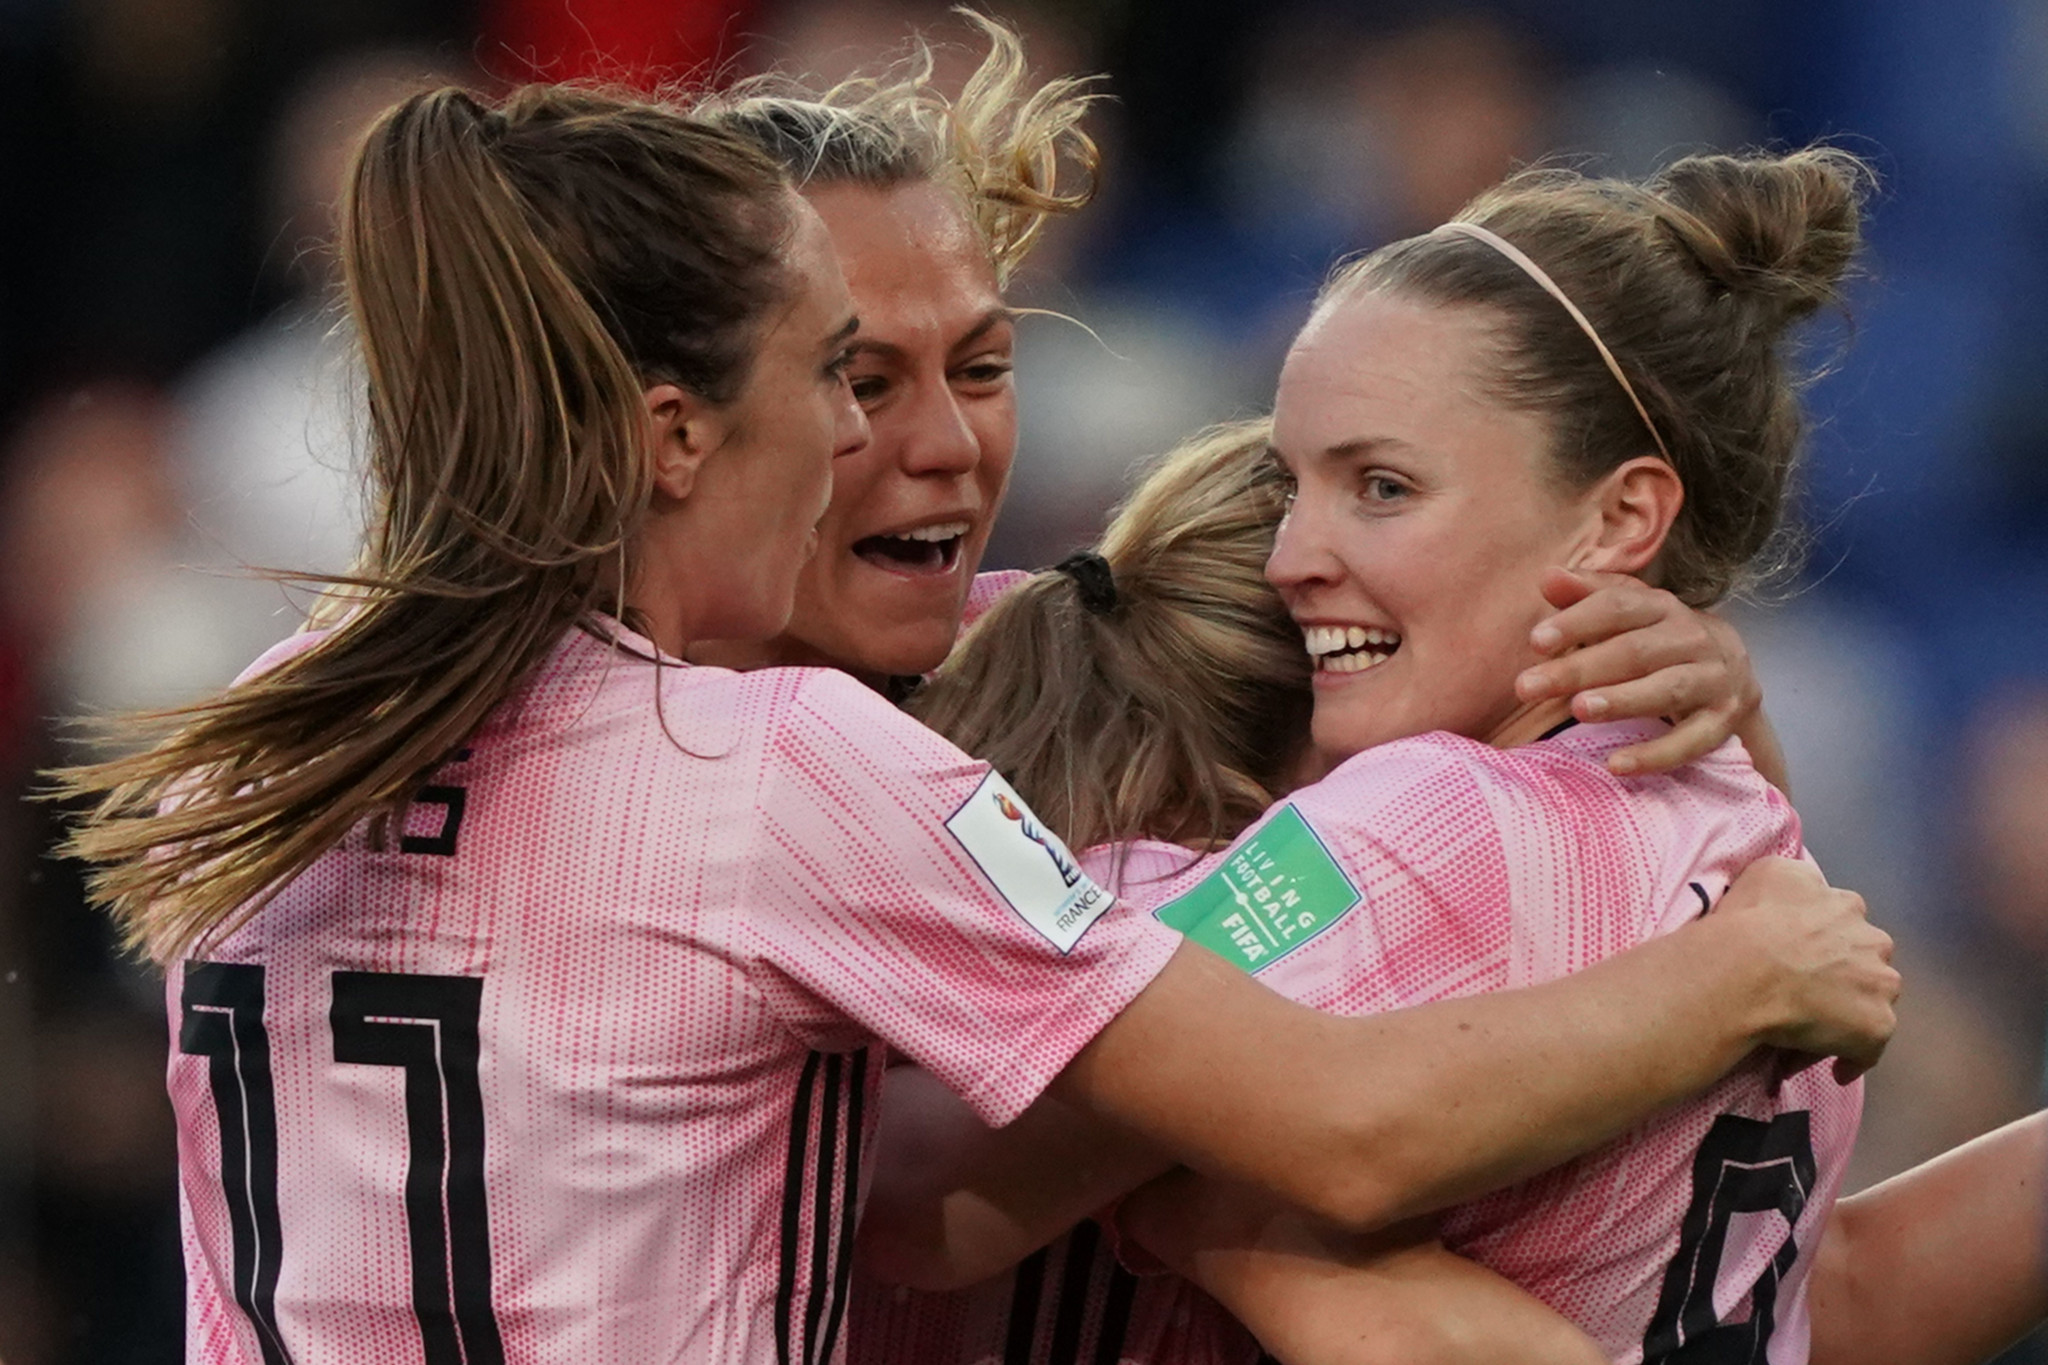 Scotland needed to beat Argentina to have a chance of progression, with Kim Little opening the scoring for them ©Getty Images